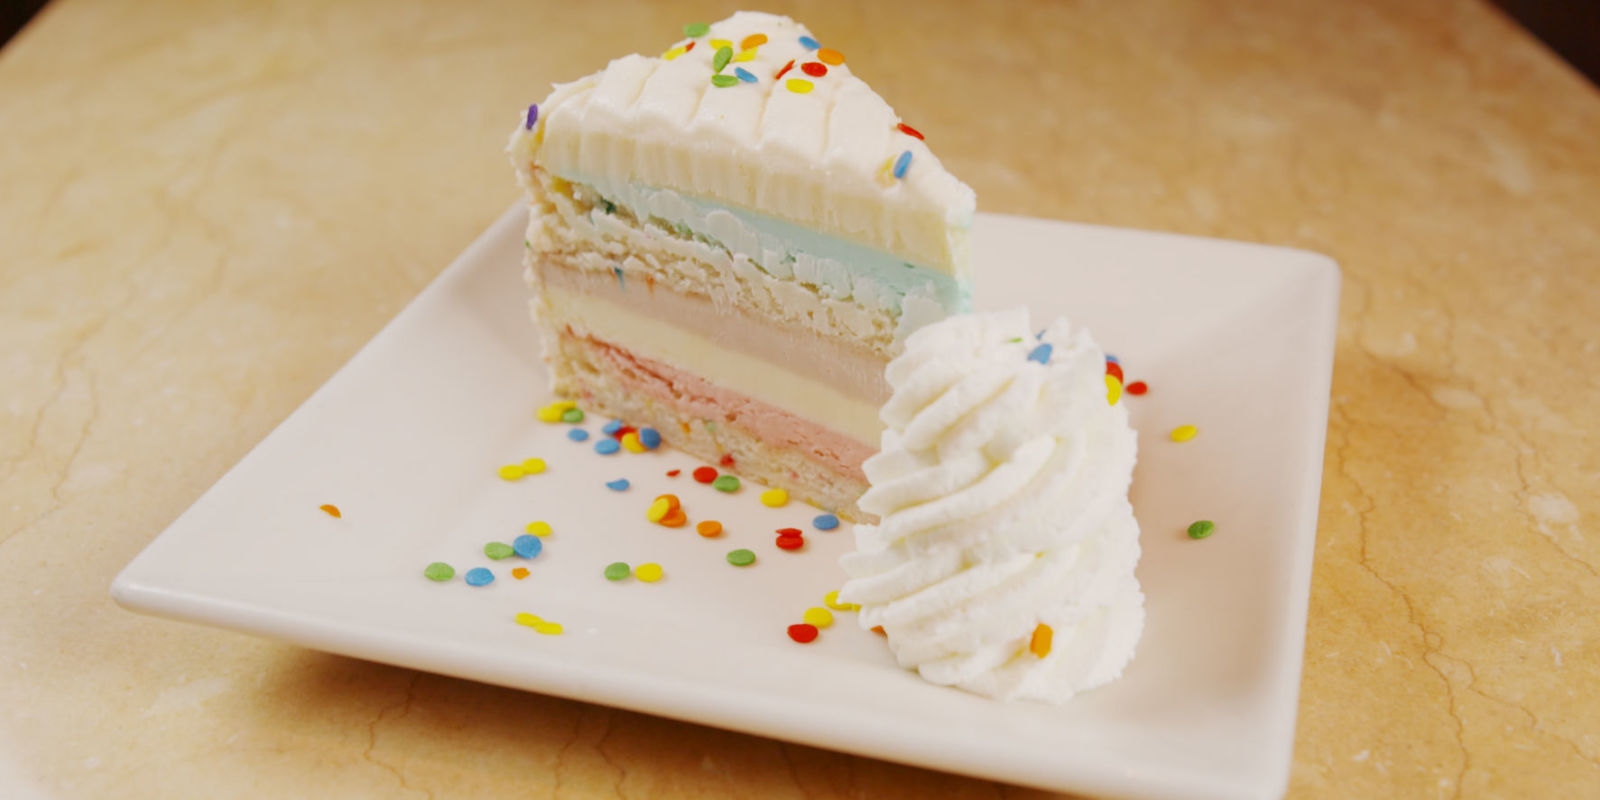 Can You Handle The Cheesecake Factory's 10 Hottest Cheesecakes?